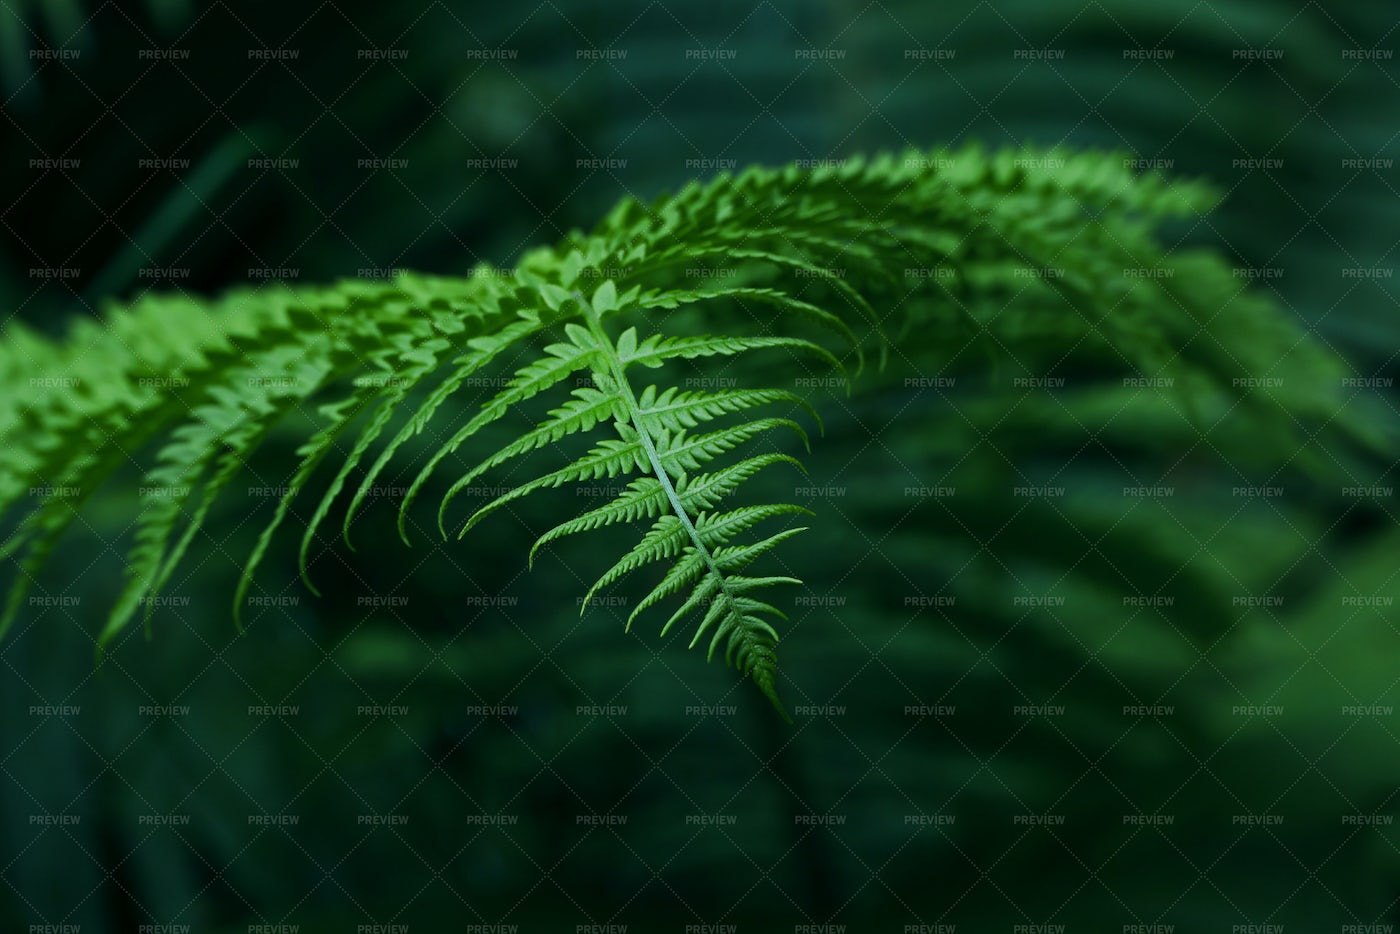 Background Of Green Fern Leaves: Stock Photos